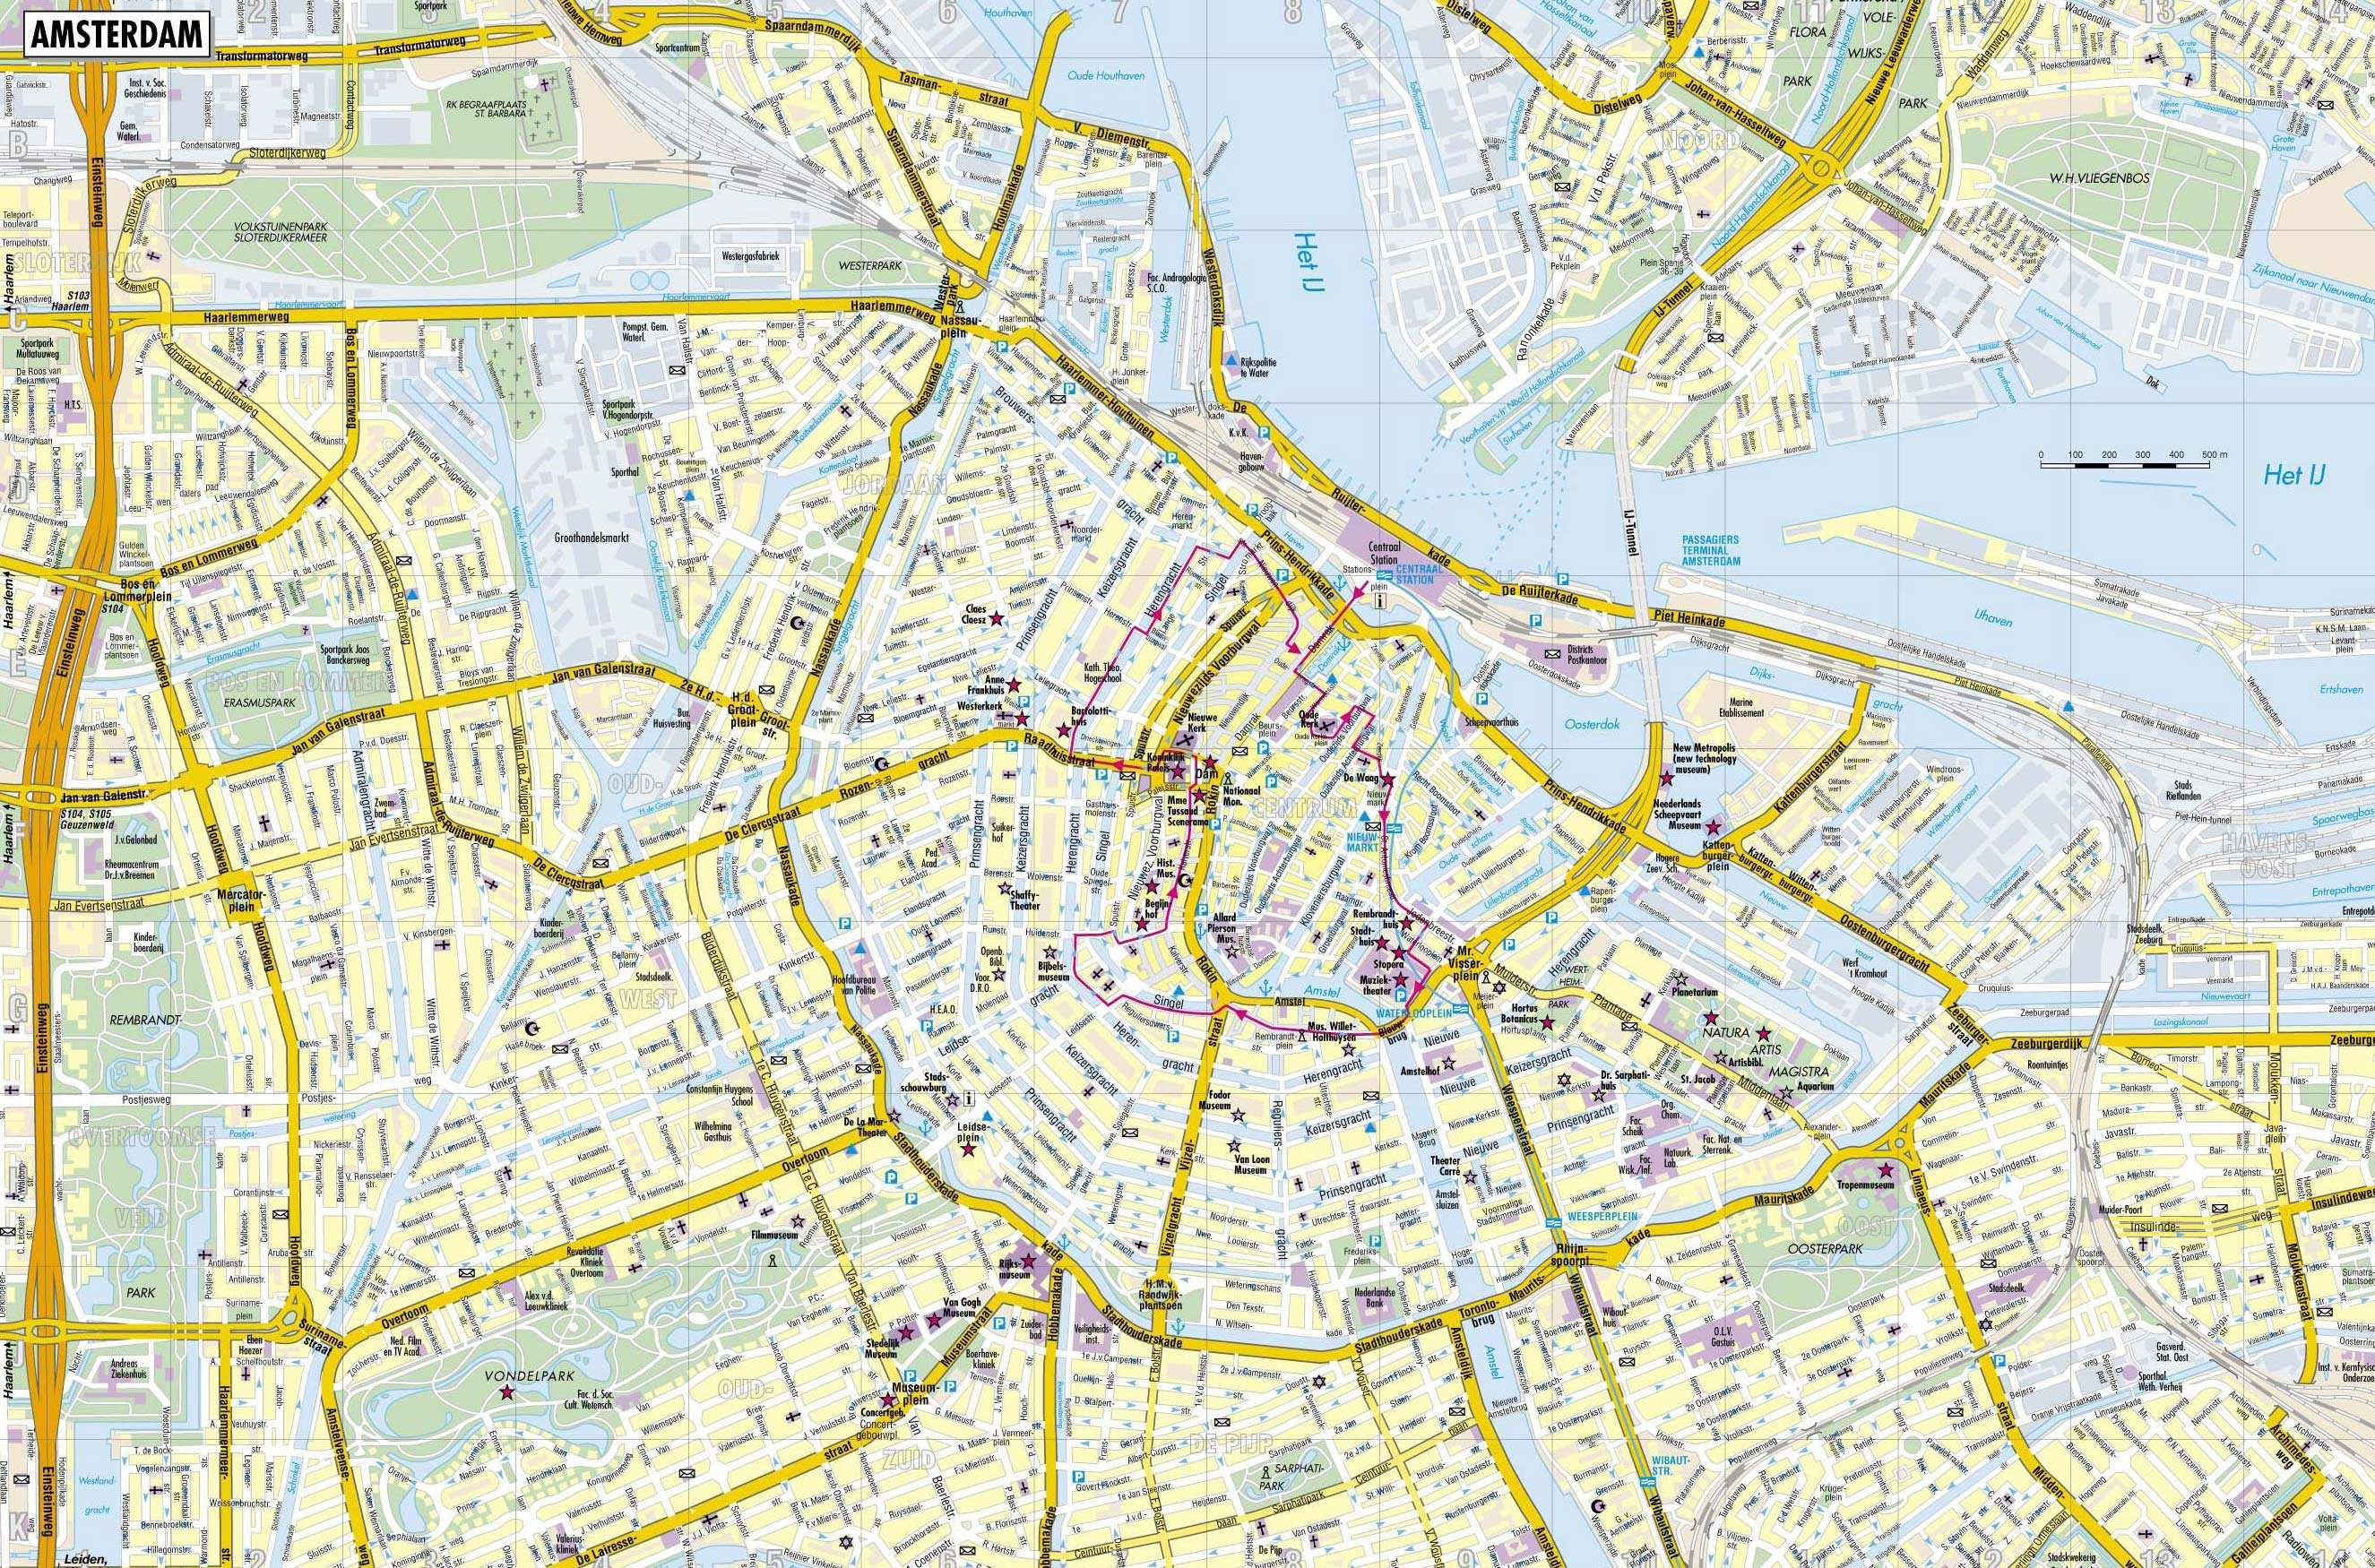 Amsterdam Map Pdf Large Amsterdam Maps for Free Download and Print | High Resolution  Amsterdam Map Pdf